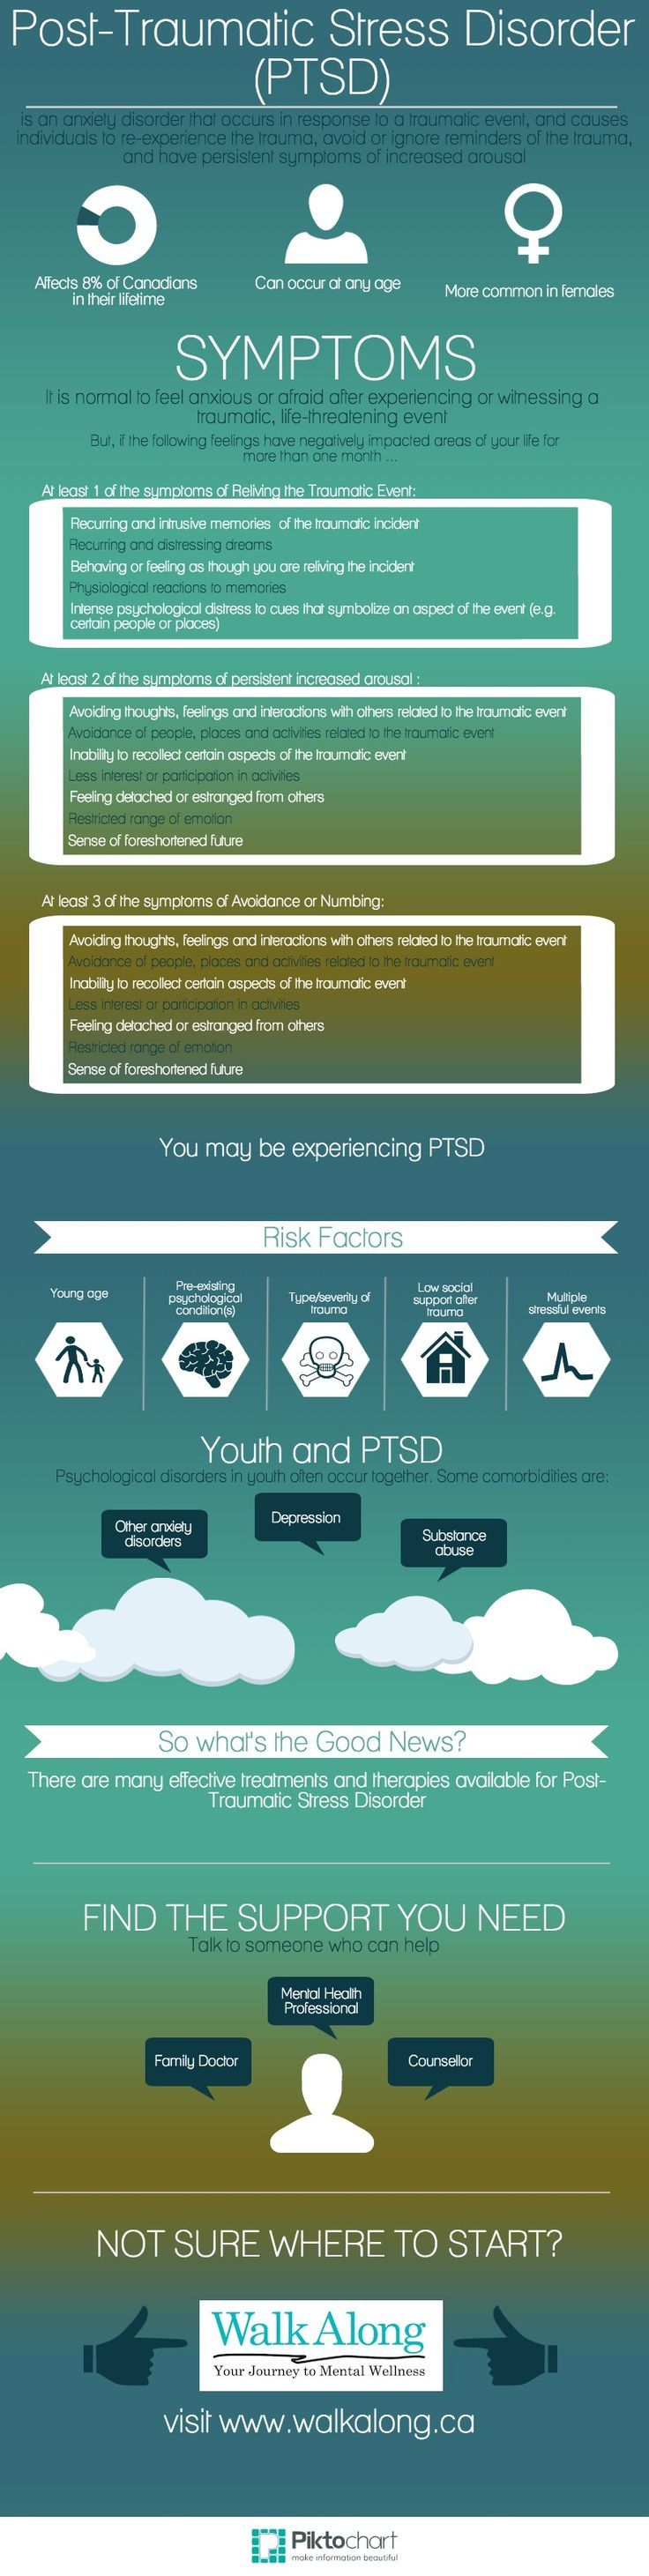 Traumatic Stress Disorder PTSD Recommended Health Infograpics Find facts about PTSD at www.pinterest.com/mentallyinteresting/post-traumatic-stress-disorder?utm_content=bufferfff3c&utm_medium=social&utm_source=pinterest.com&utm_campaign=buffer